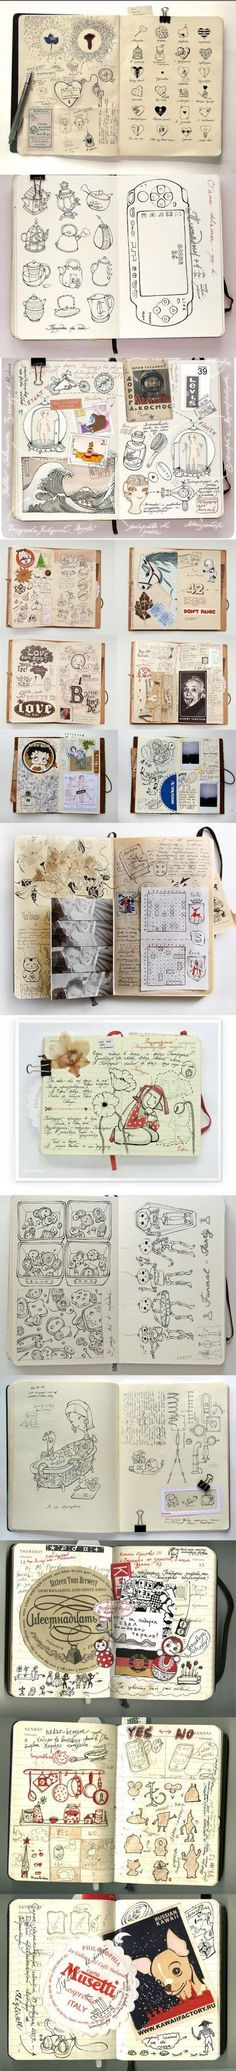 sketchbook / art journal / moleskine / creativity / drawing / scrapbook- I need… Buch Design, Doodles, Arte Sketchbook, Moleskine Sketchbook, Fashion Sketchbook, Visual Diary, Sketchbook Inspiration, Sketchbook Ideas, Doodle Inspiration